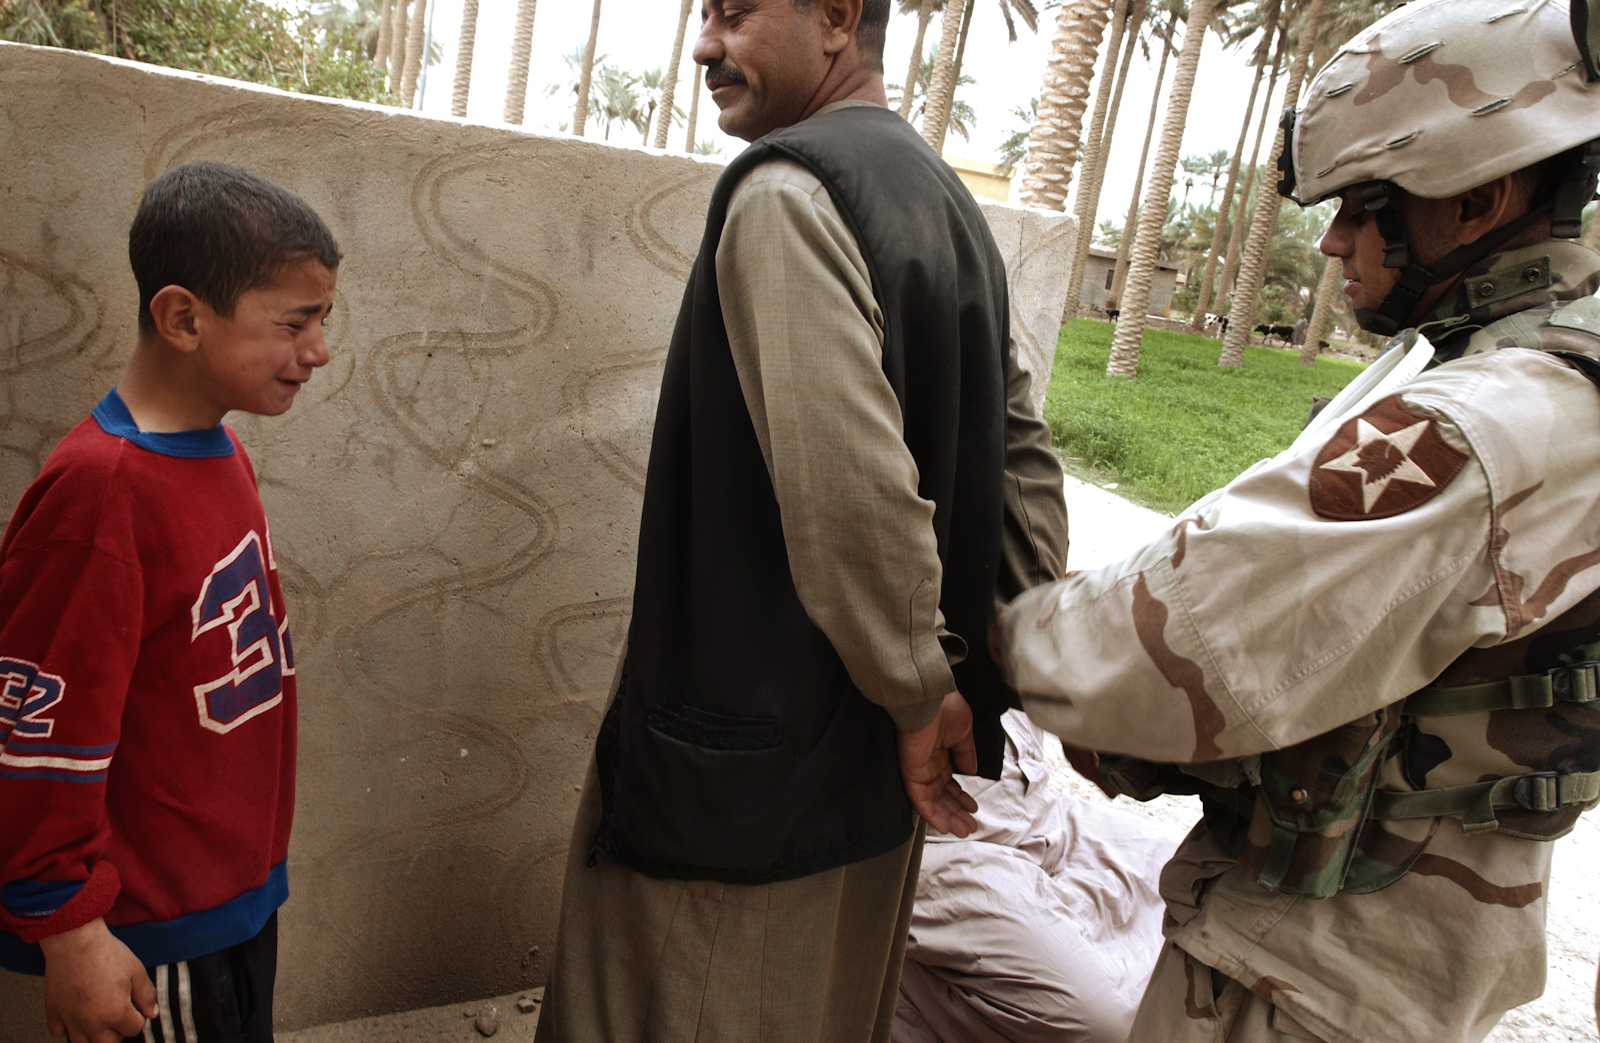 During a house to house search for insurgents in Ramadi, a boy cries as his father is taken away by U.S. soldiers, March 7, 2005.